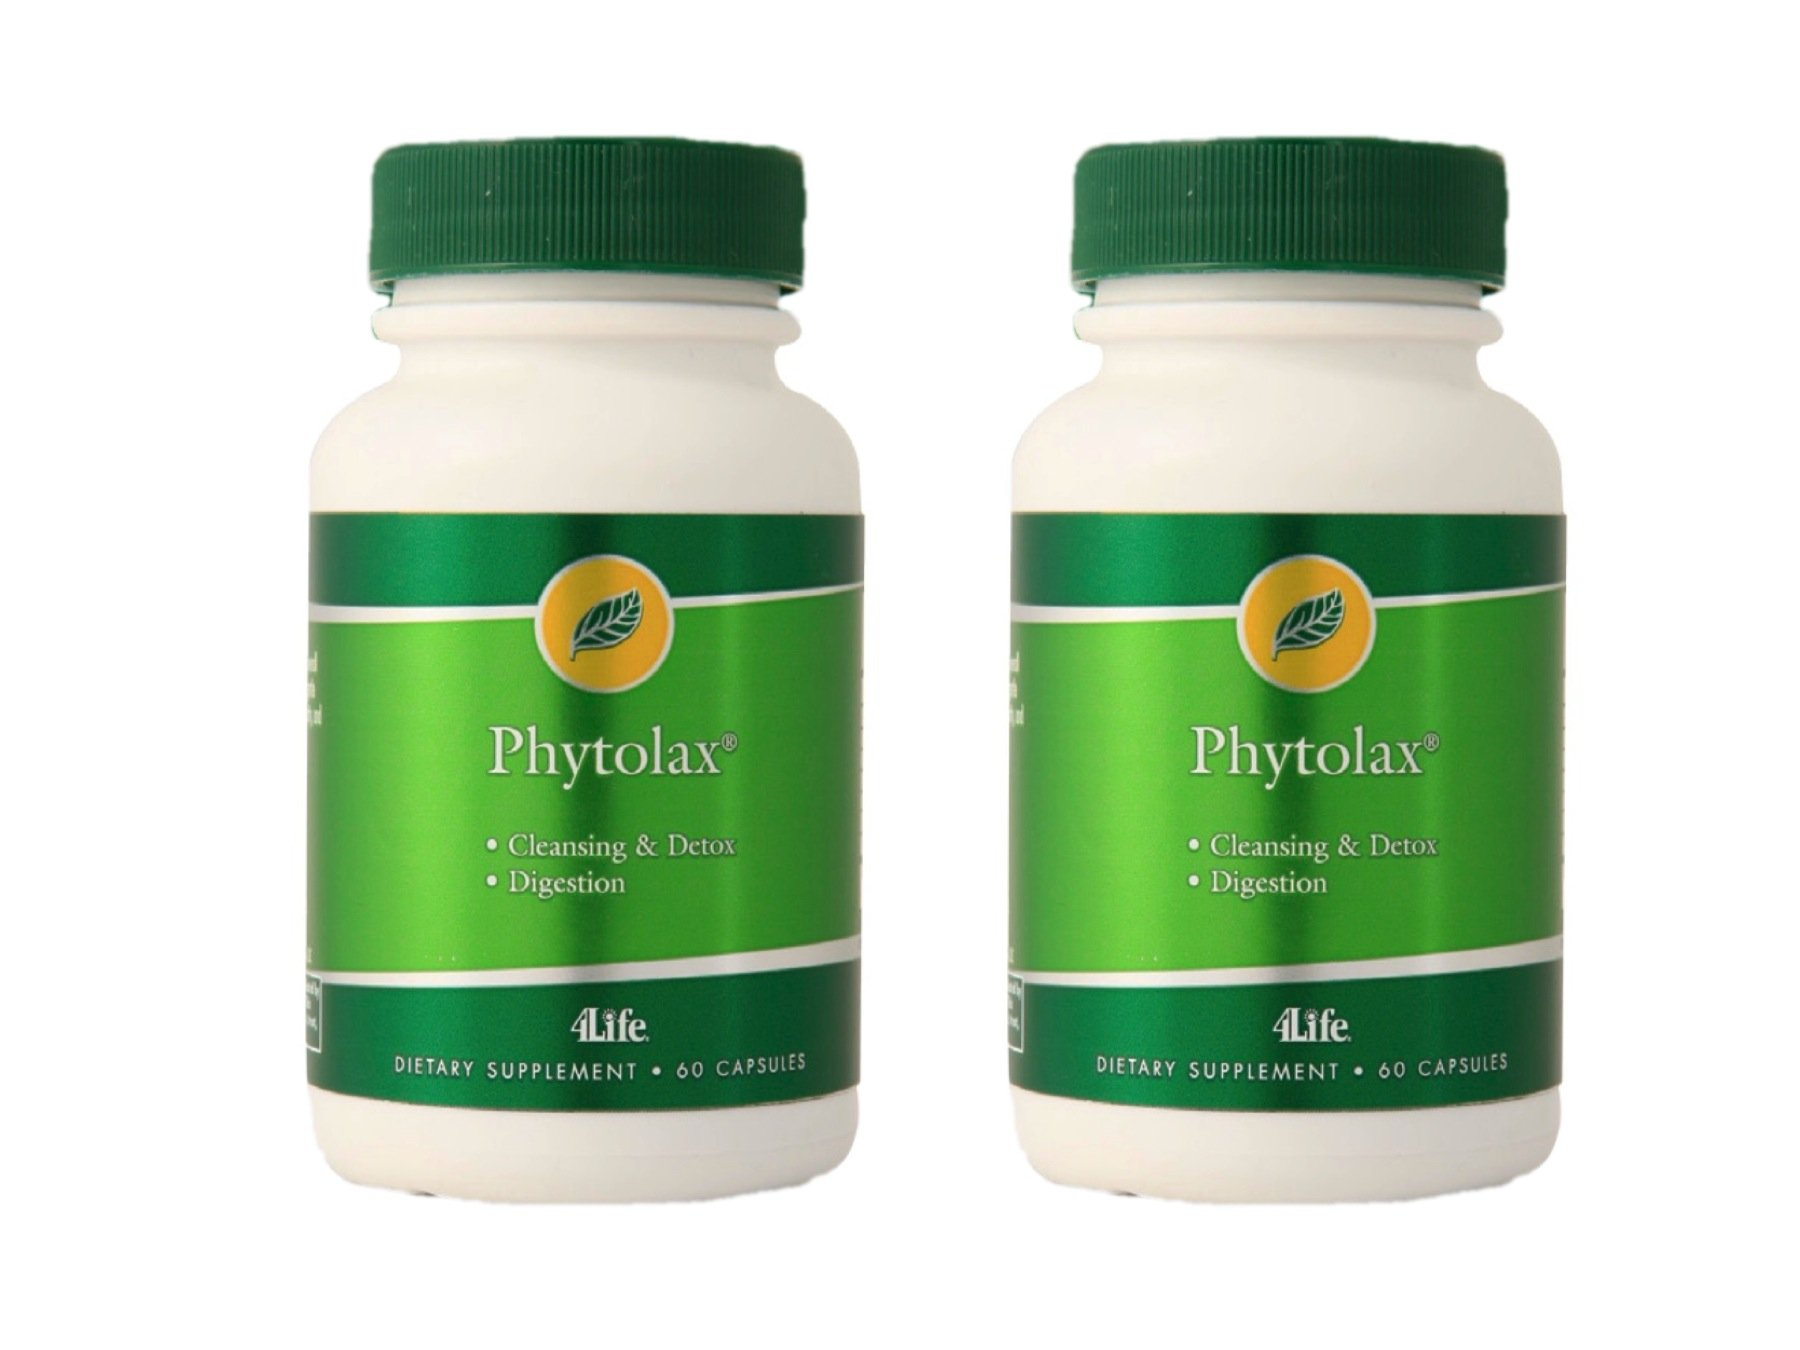 4life PhytoLax with Formula for Healthy Digestive Function 60 capsules each (pack of 2)